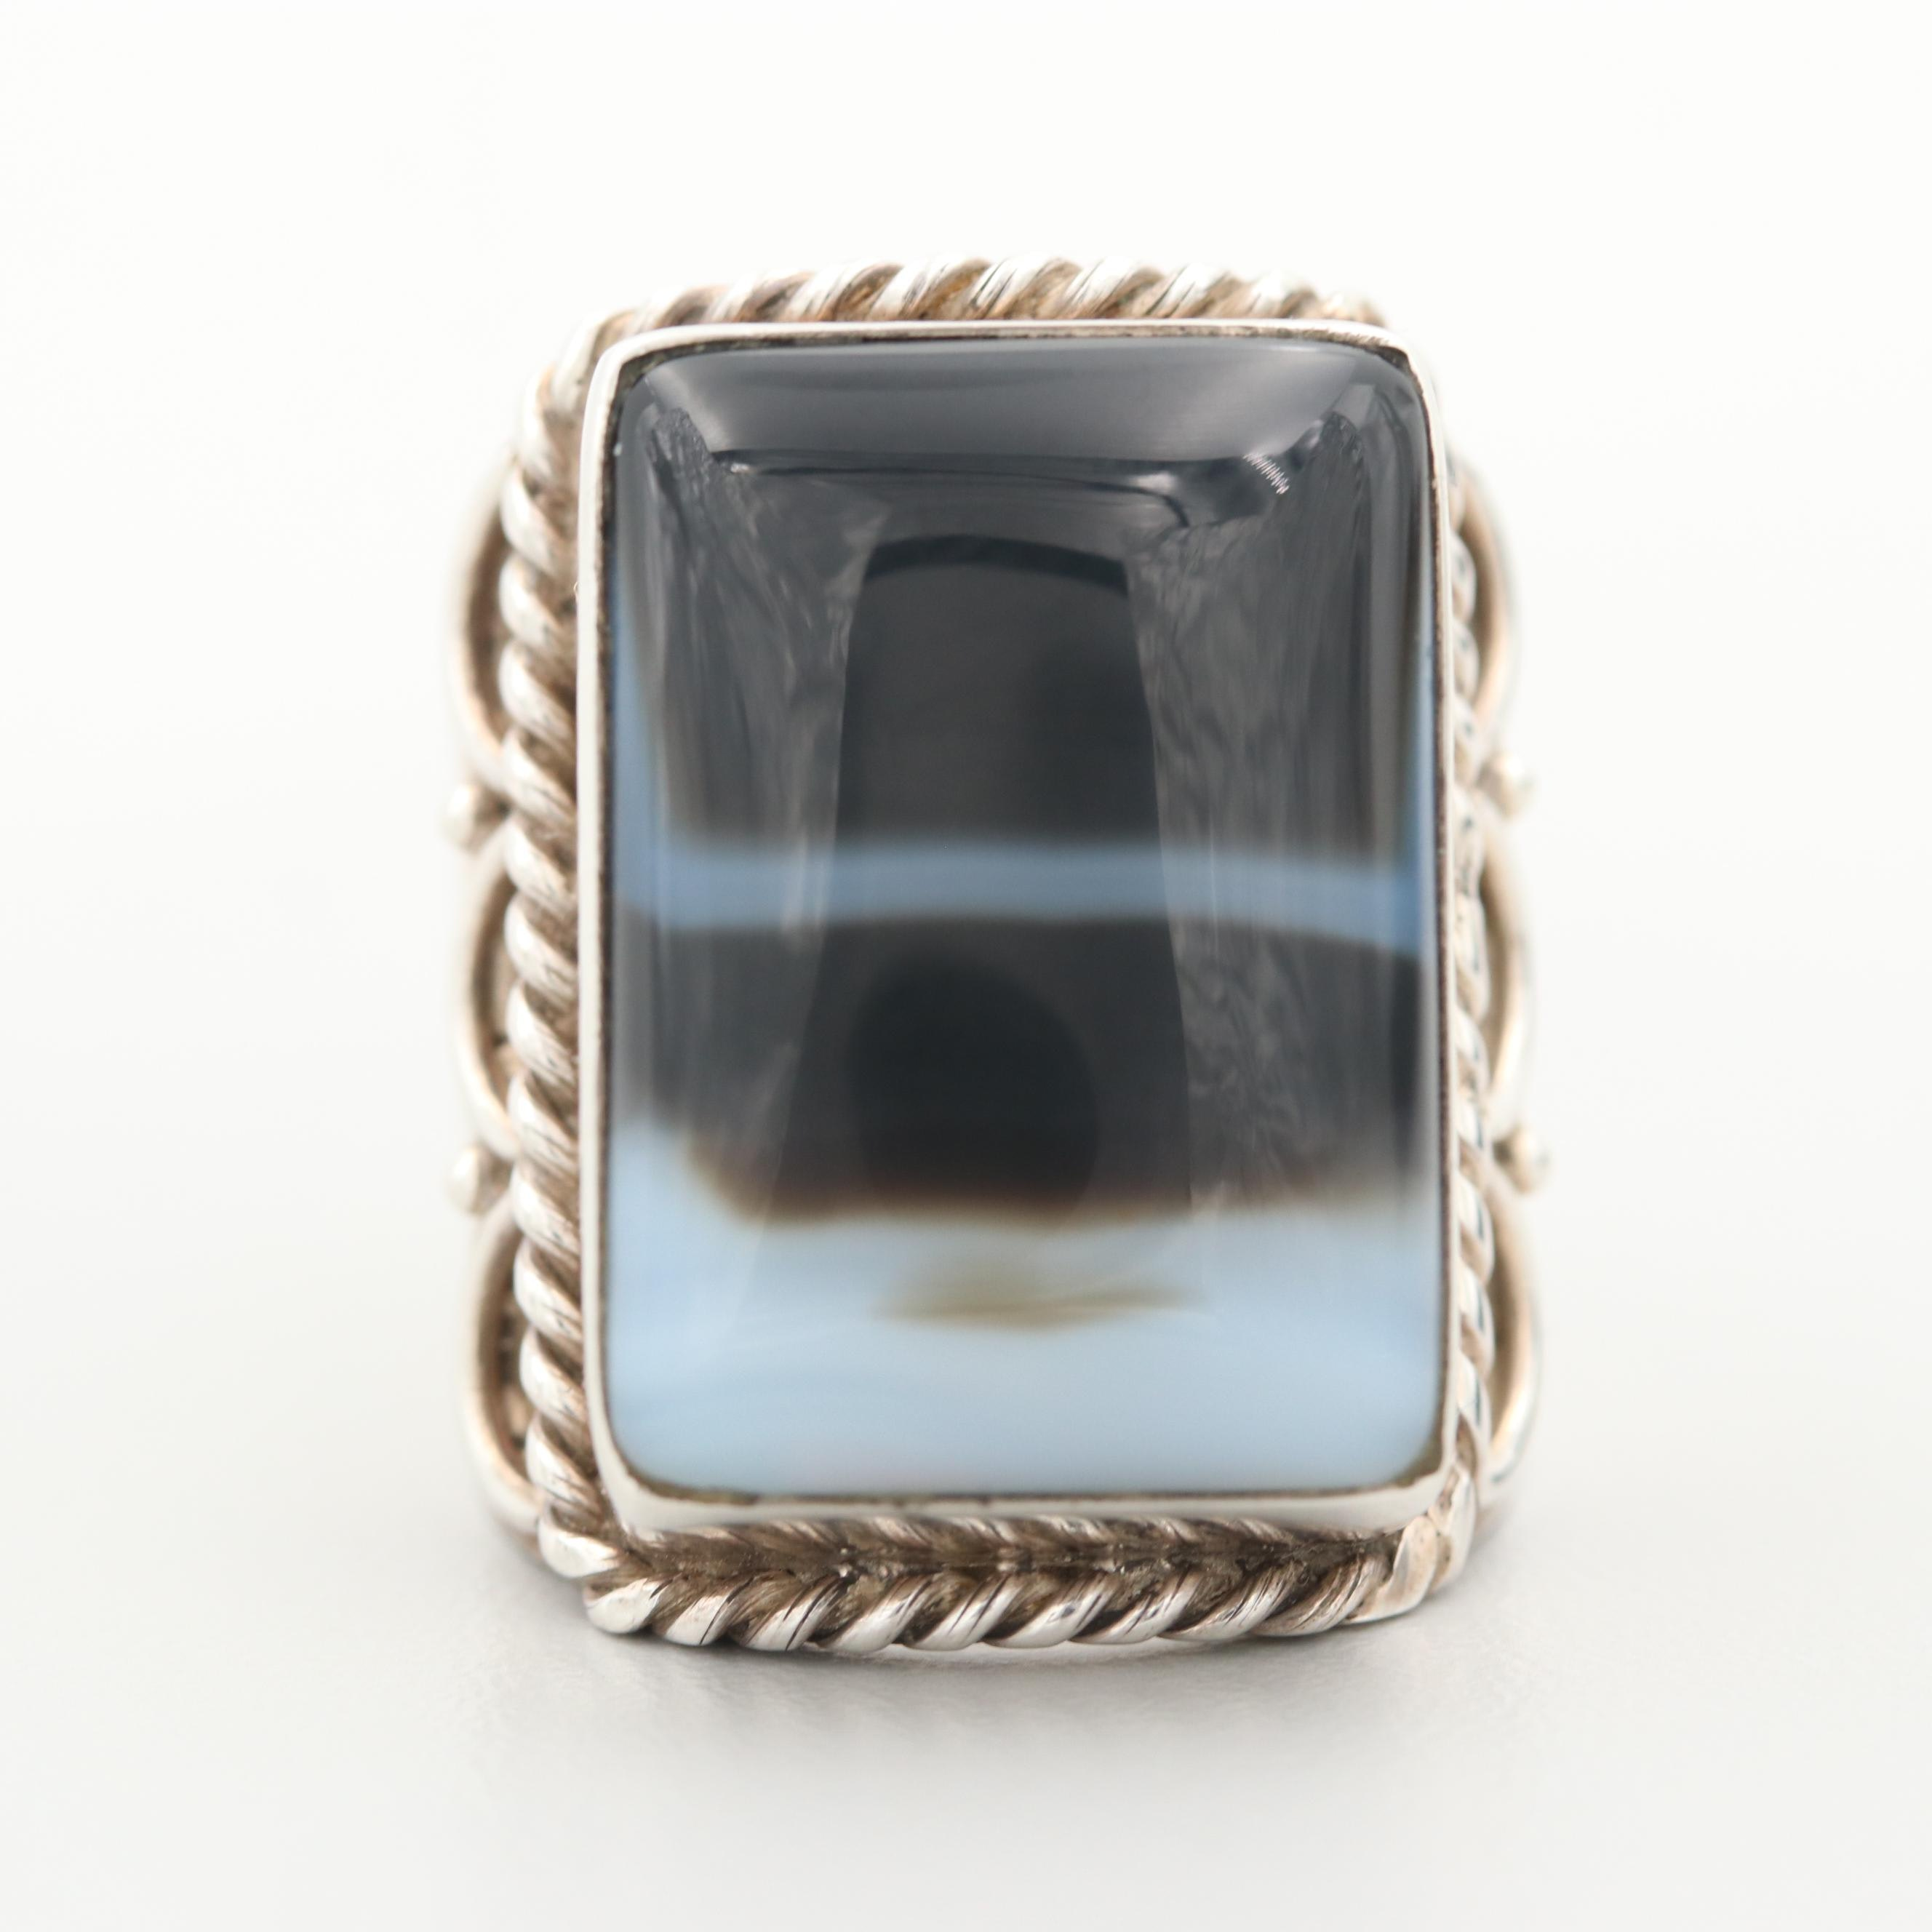 Sterling Silver Onyx Ring with Wirework Accents